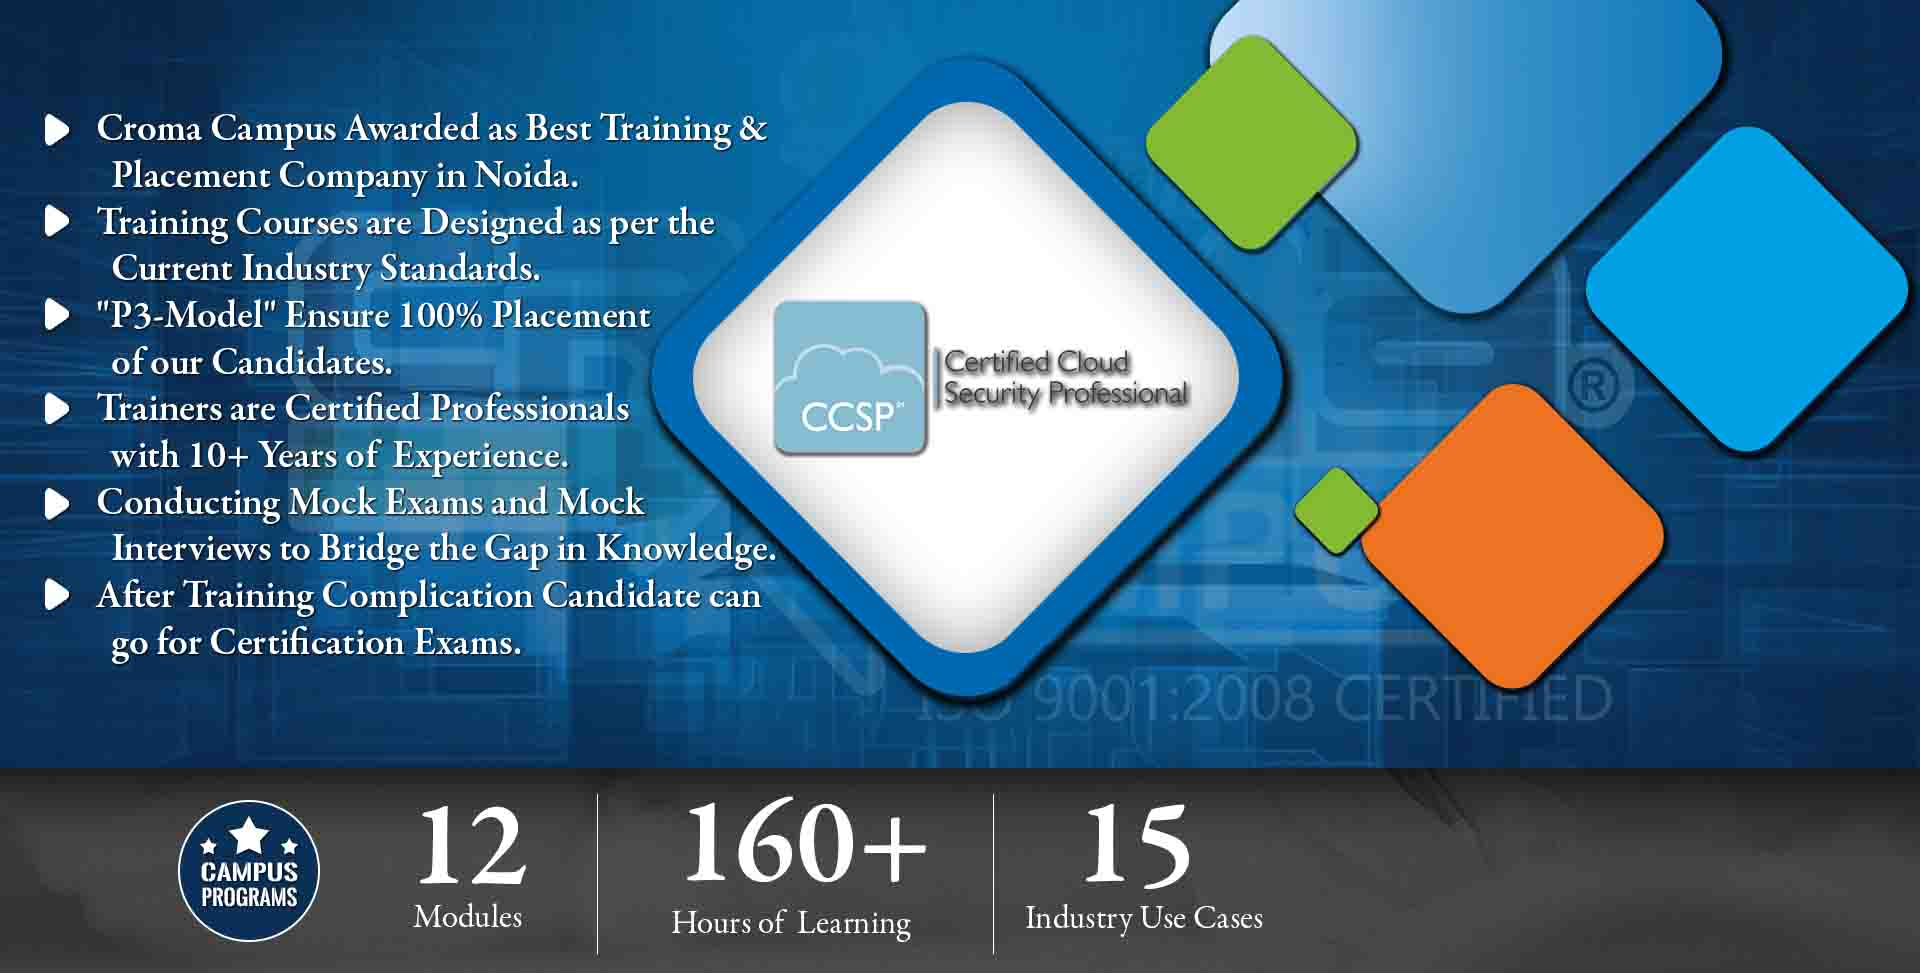 CCNP Training in Gurgaon- Croma Campus